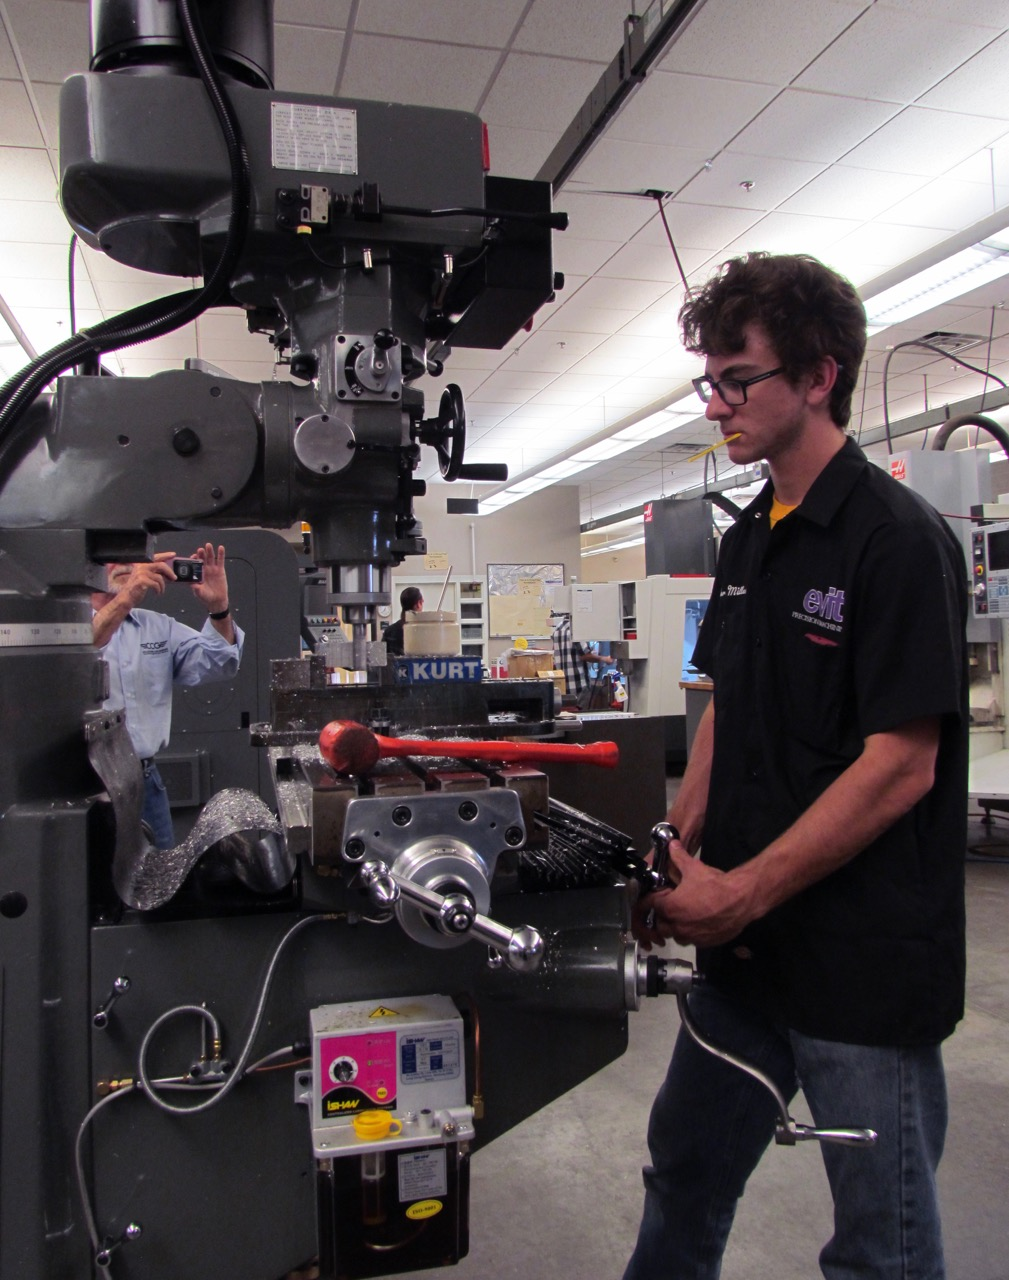 An EVIT student at work in the automotive workshop